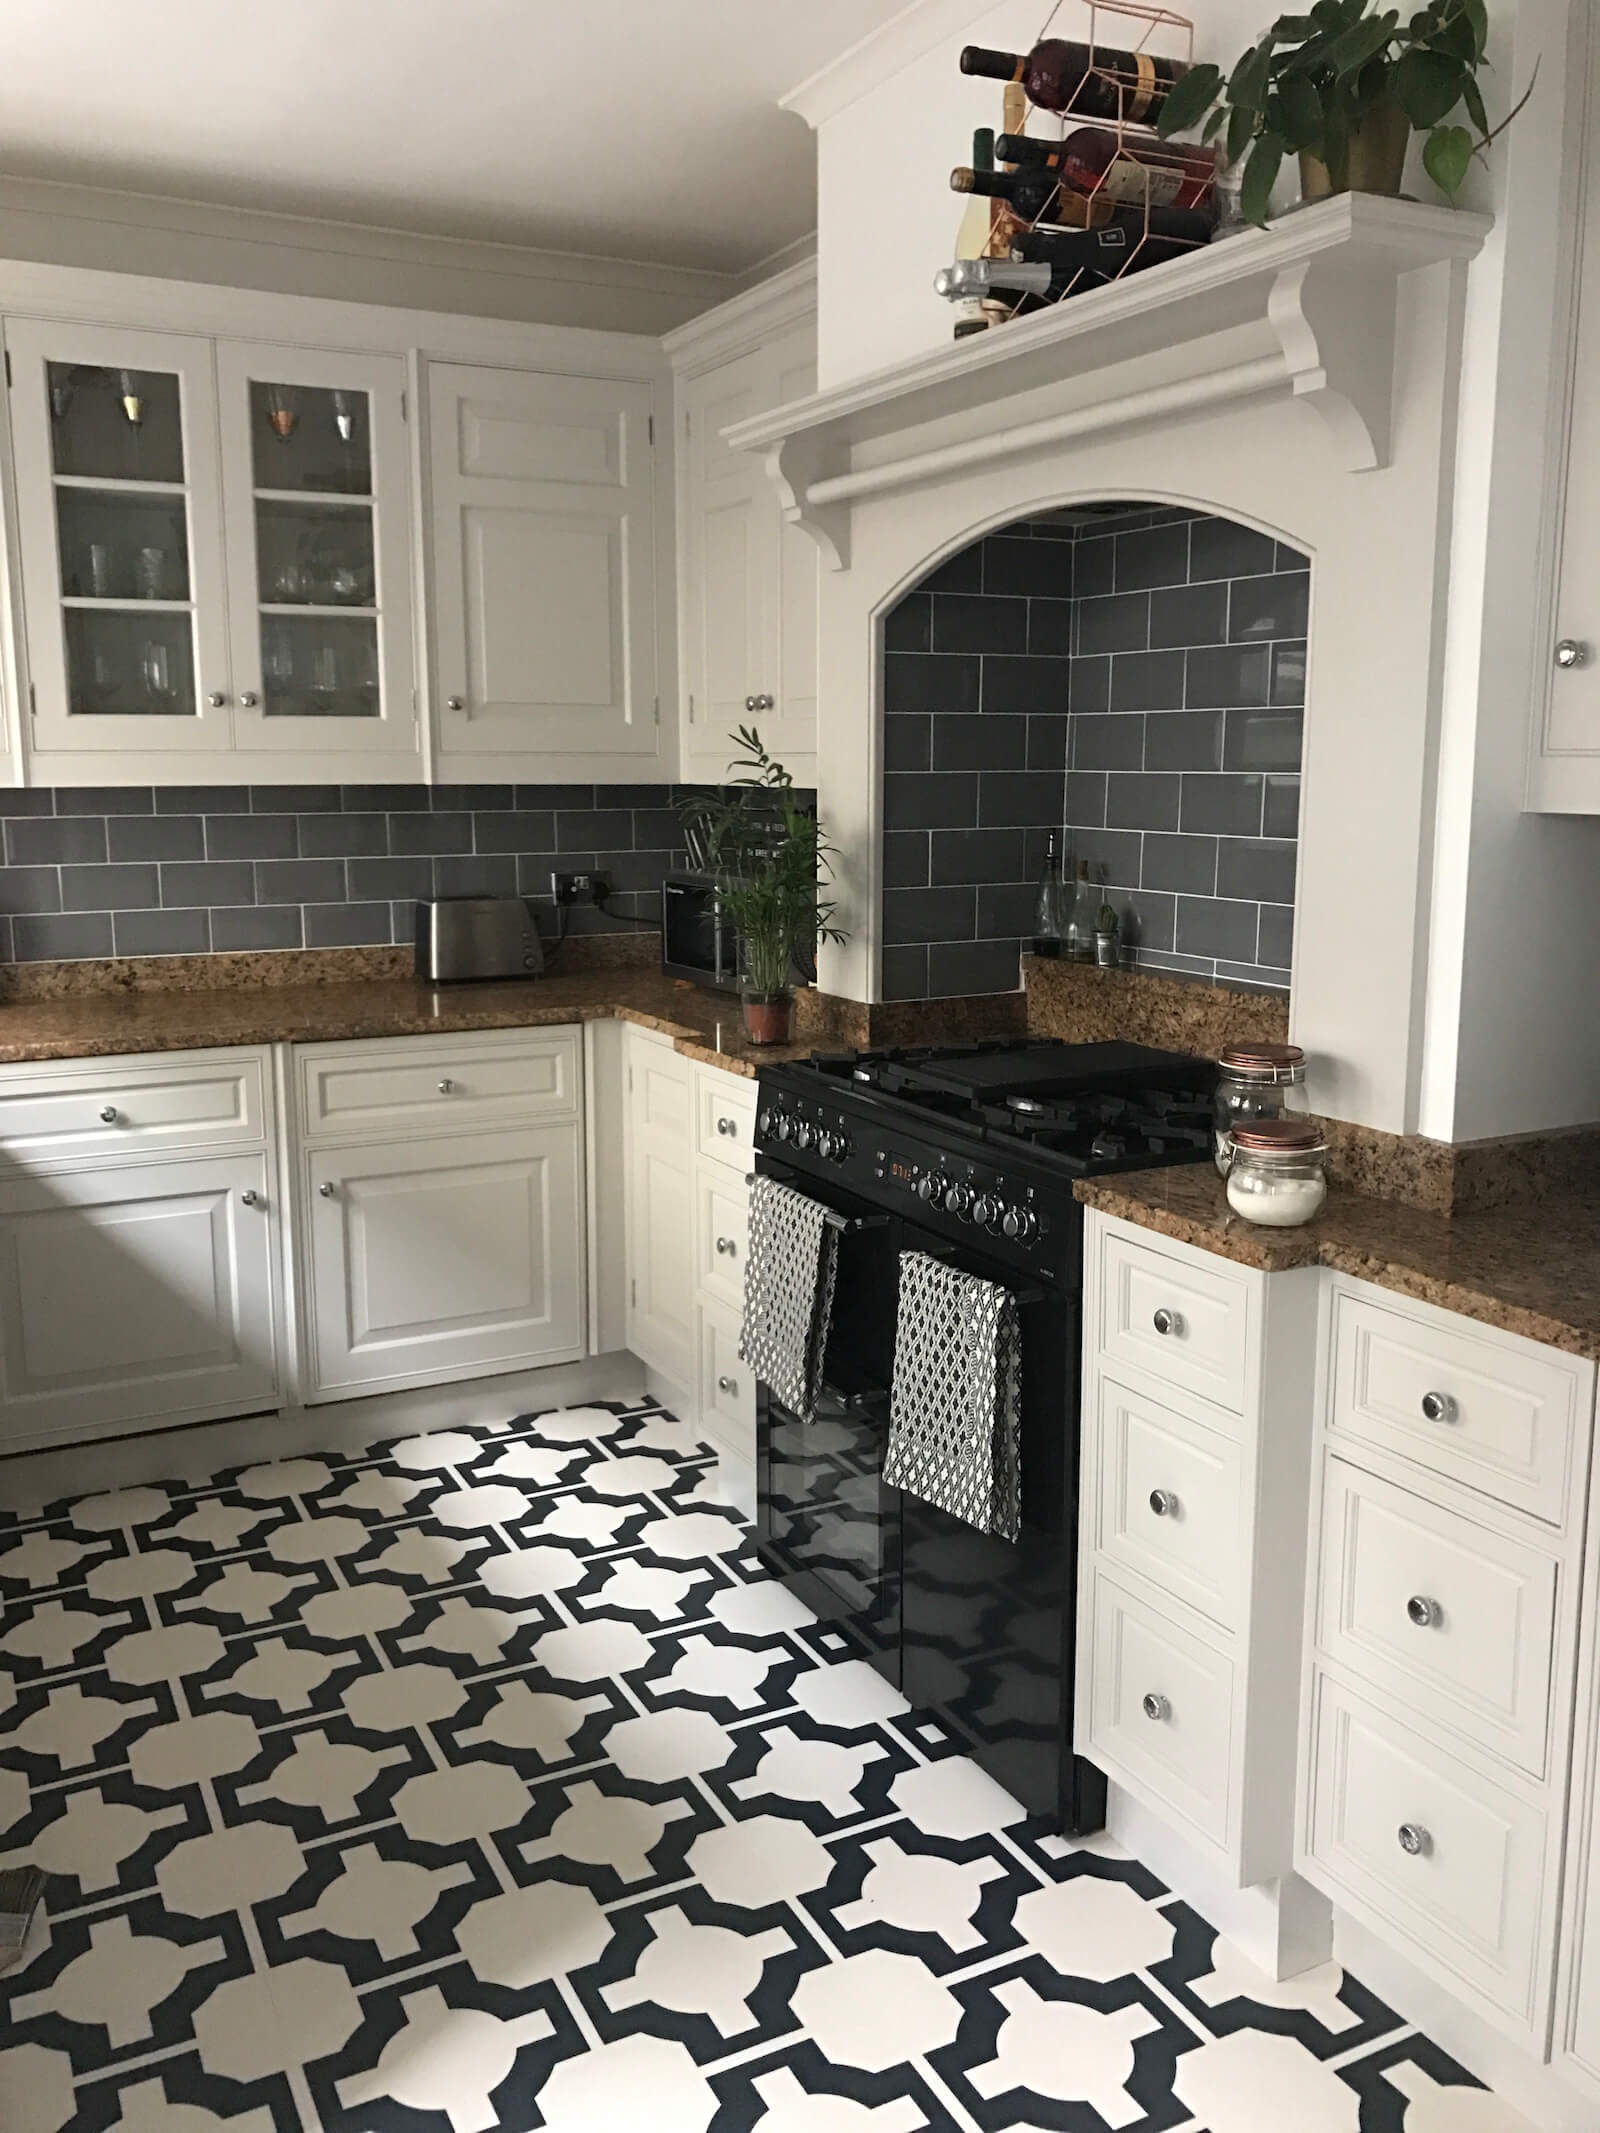 Come and see this monochrome Scandinavian inspired victorian terrace in Hertfordshire via www.lovetohome.co.uk. Home of @houseinthemiddle (Instagram).